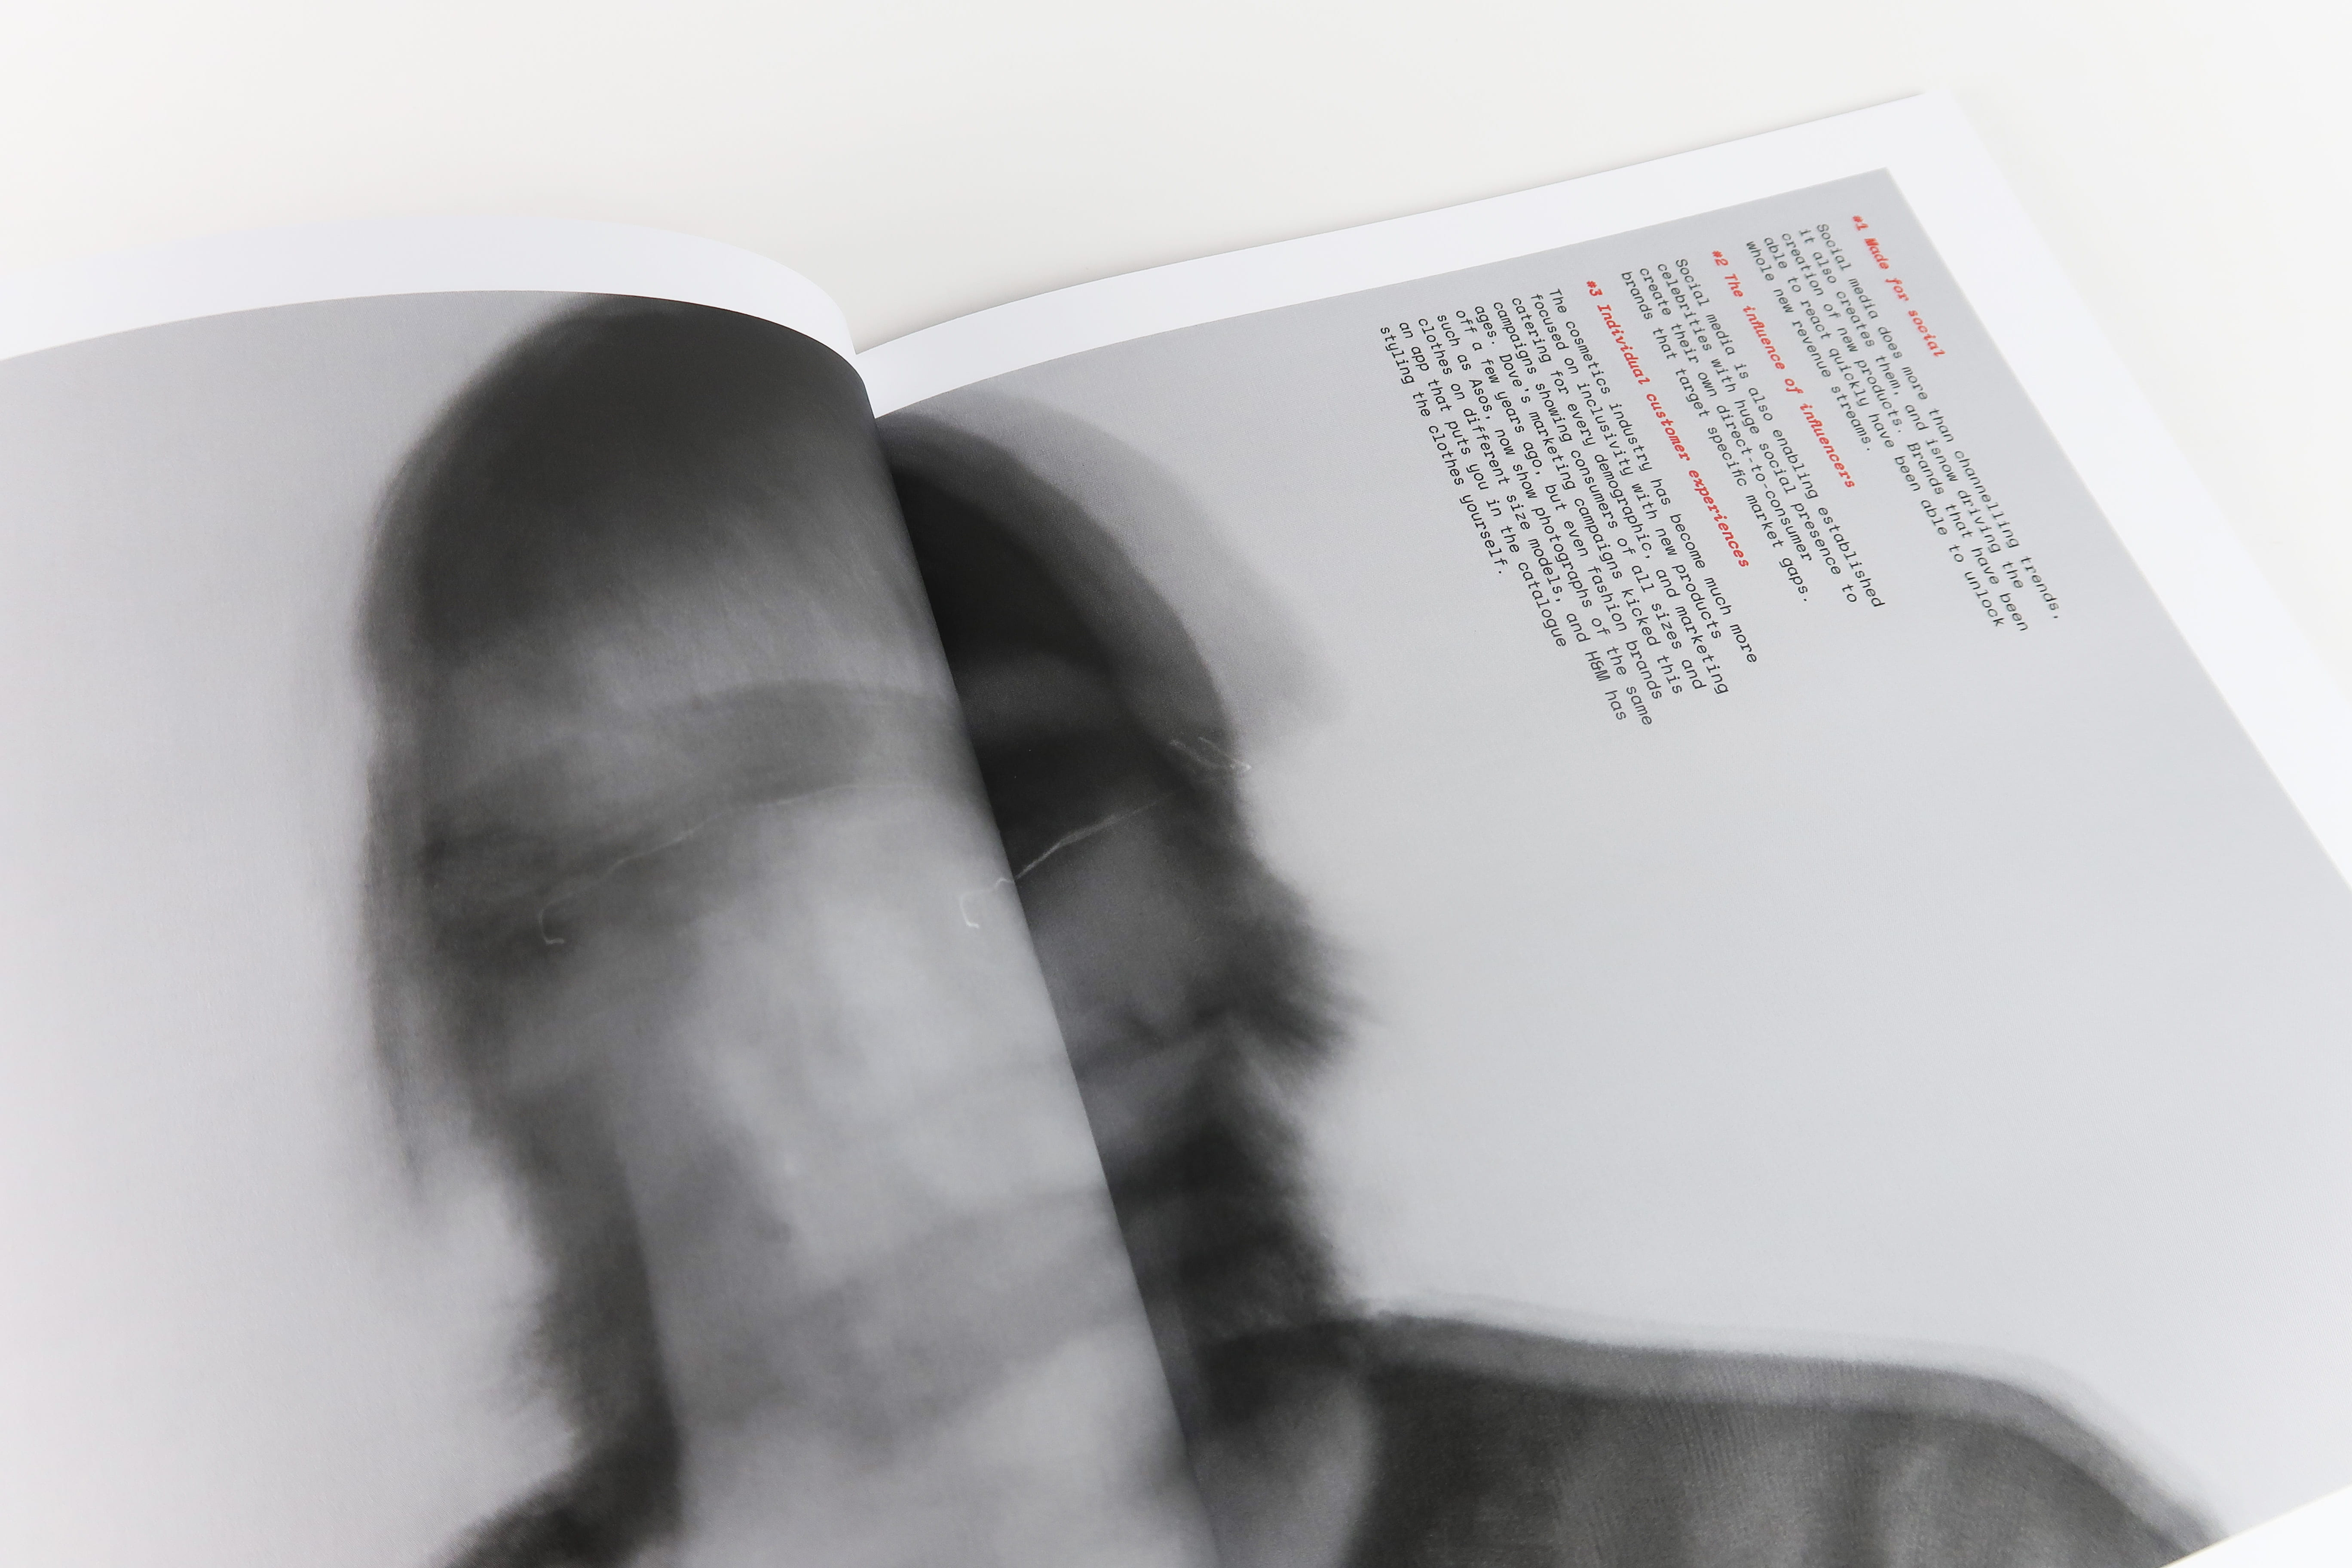 A double page magazine spread, a male shaking his head, the face is blurred and no features are visible.